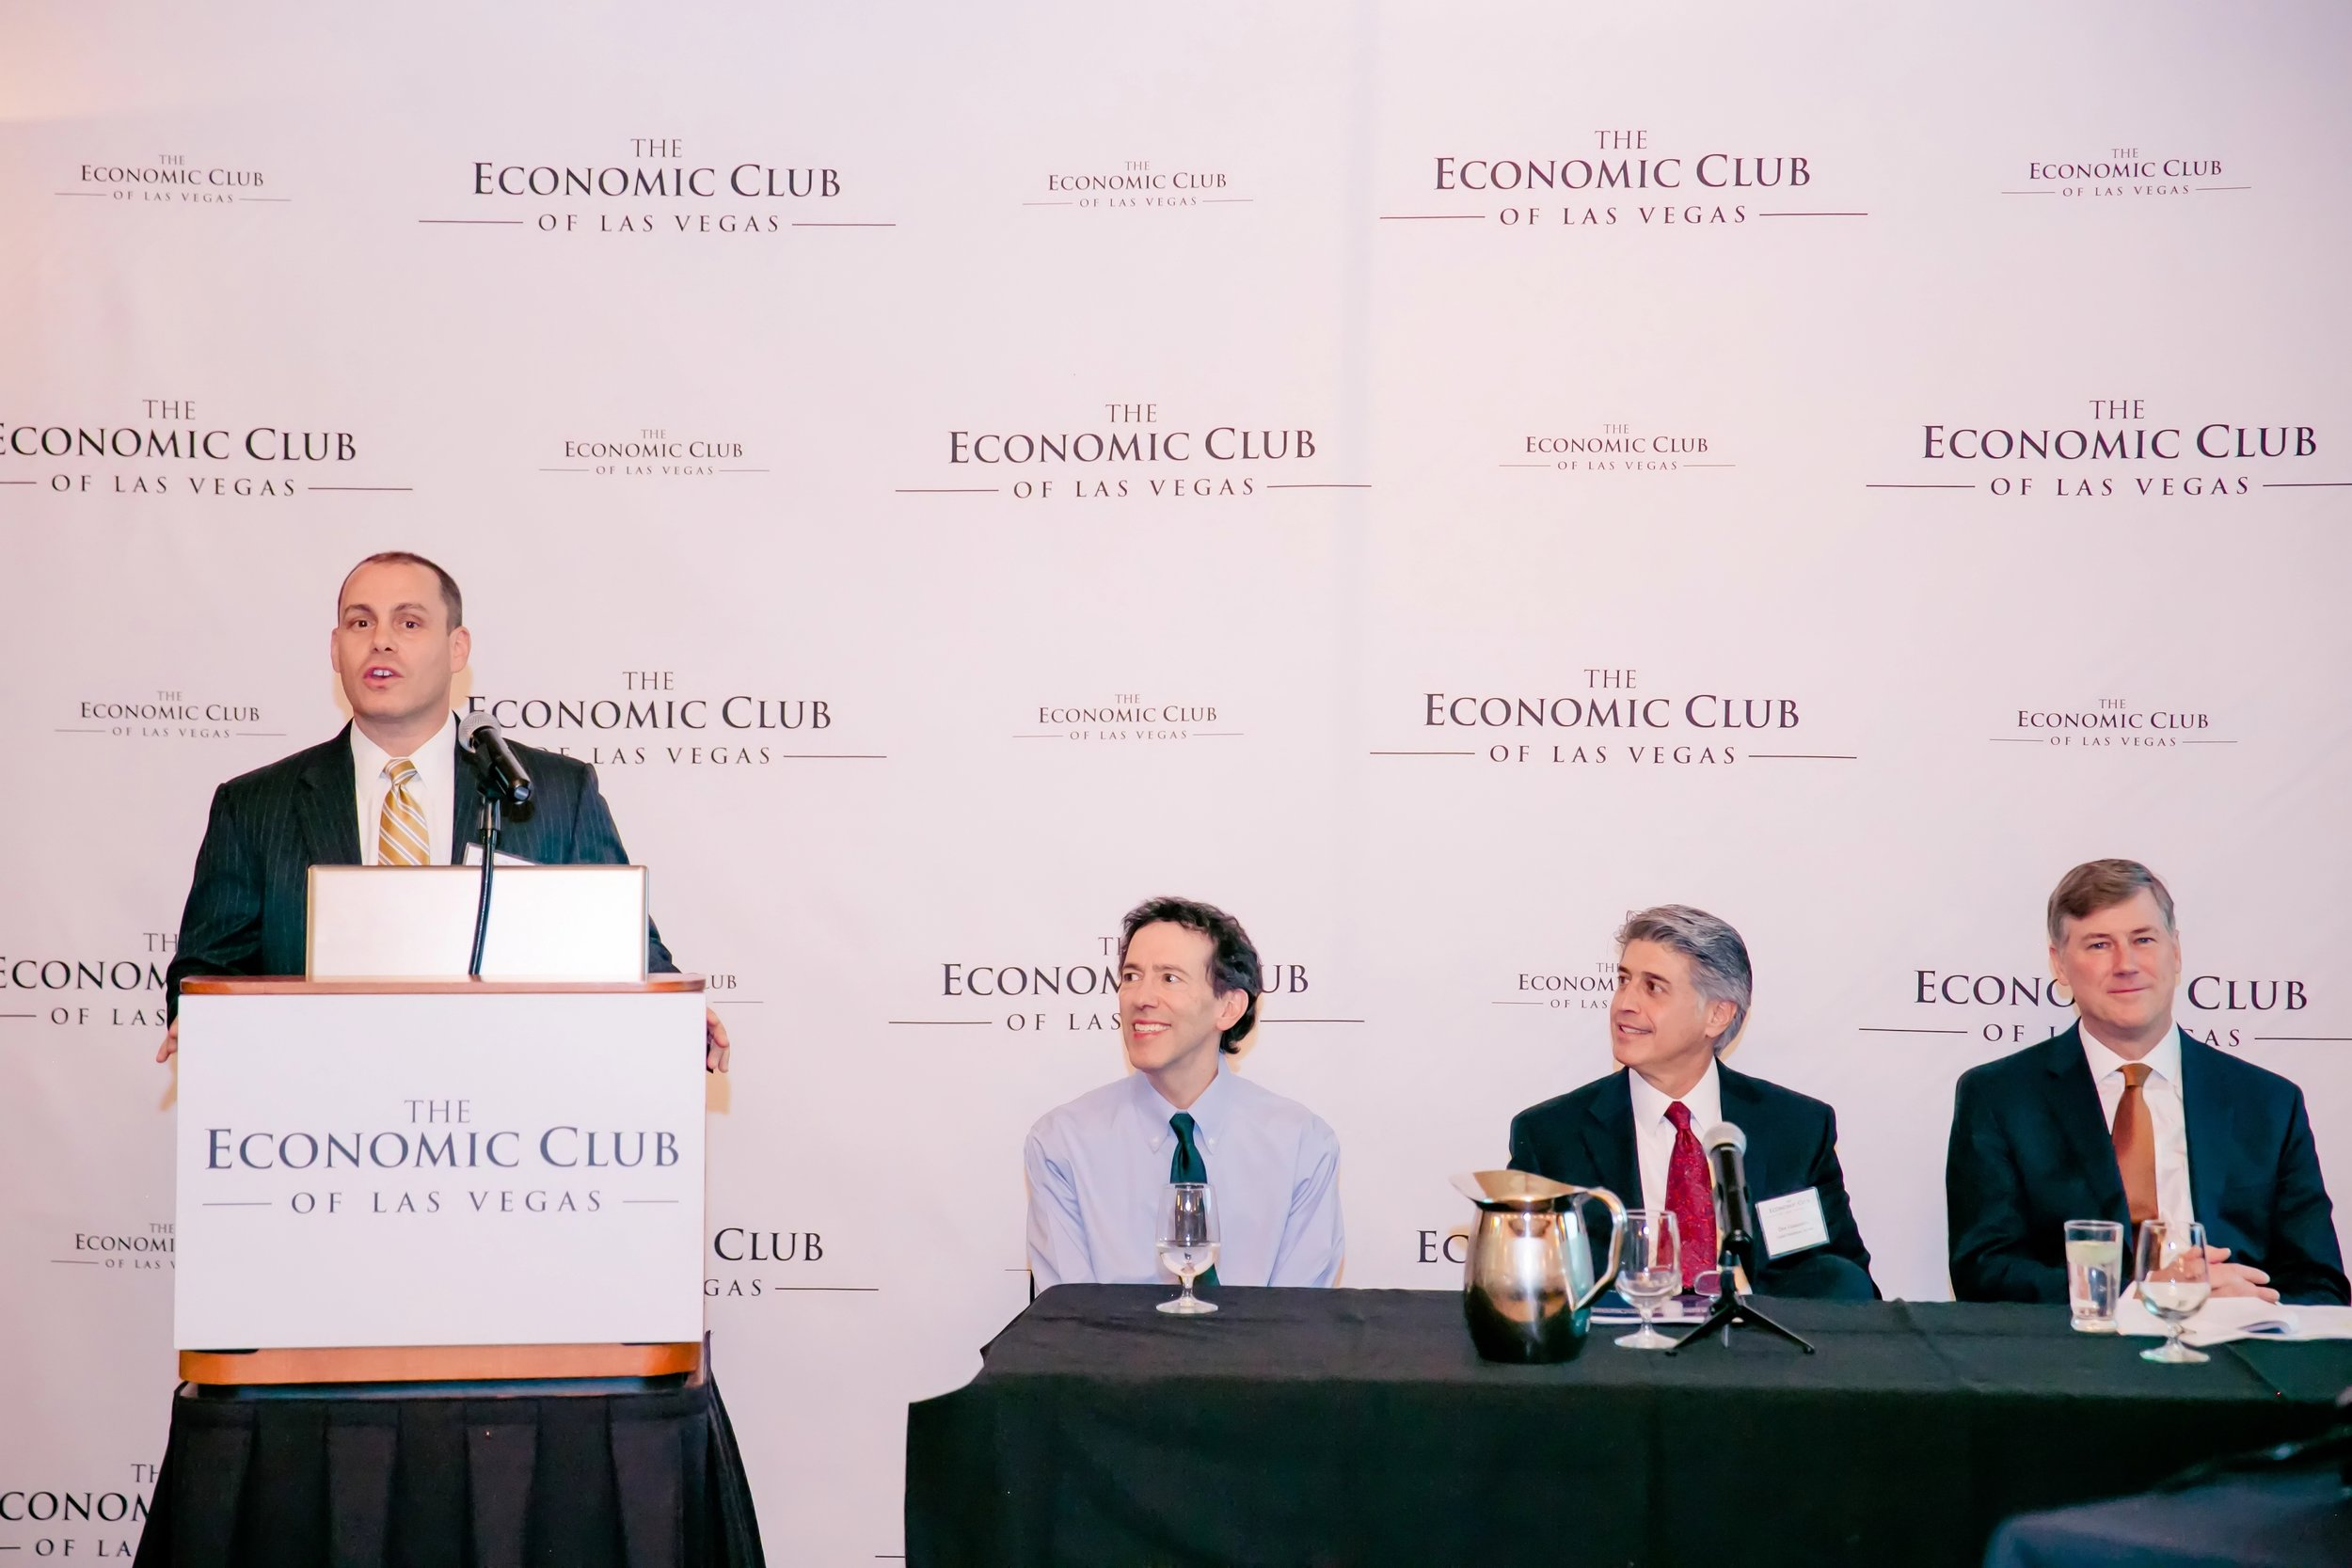 Economic Club of Las Vegas 10 26 17 Meeting (25 of 54).jpg